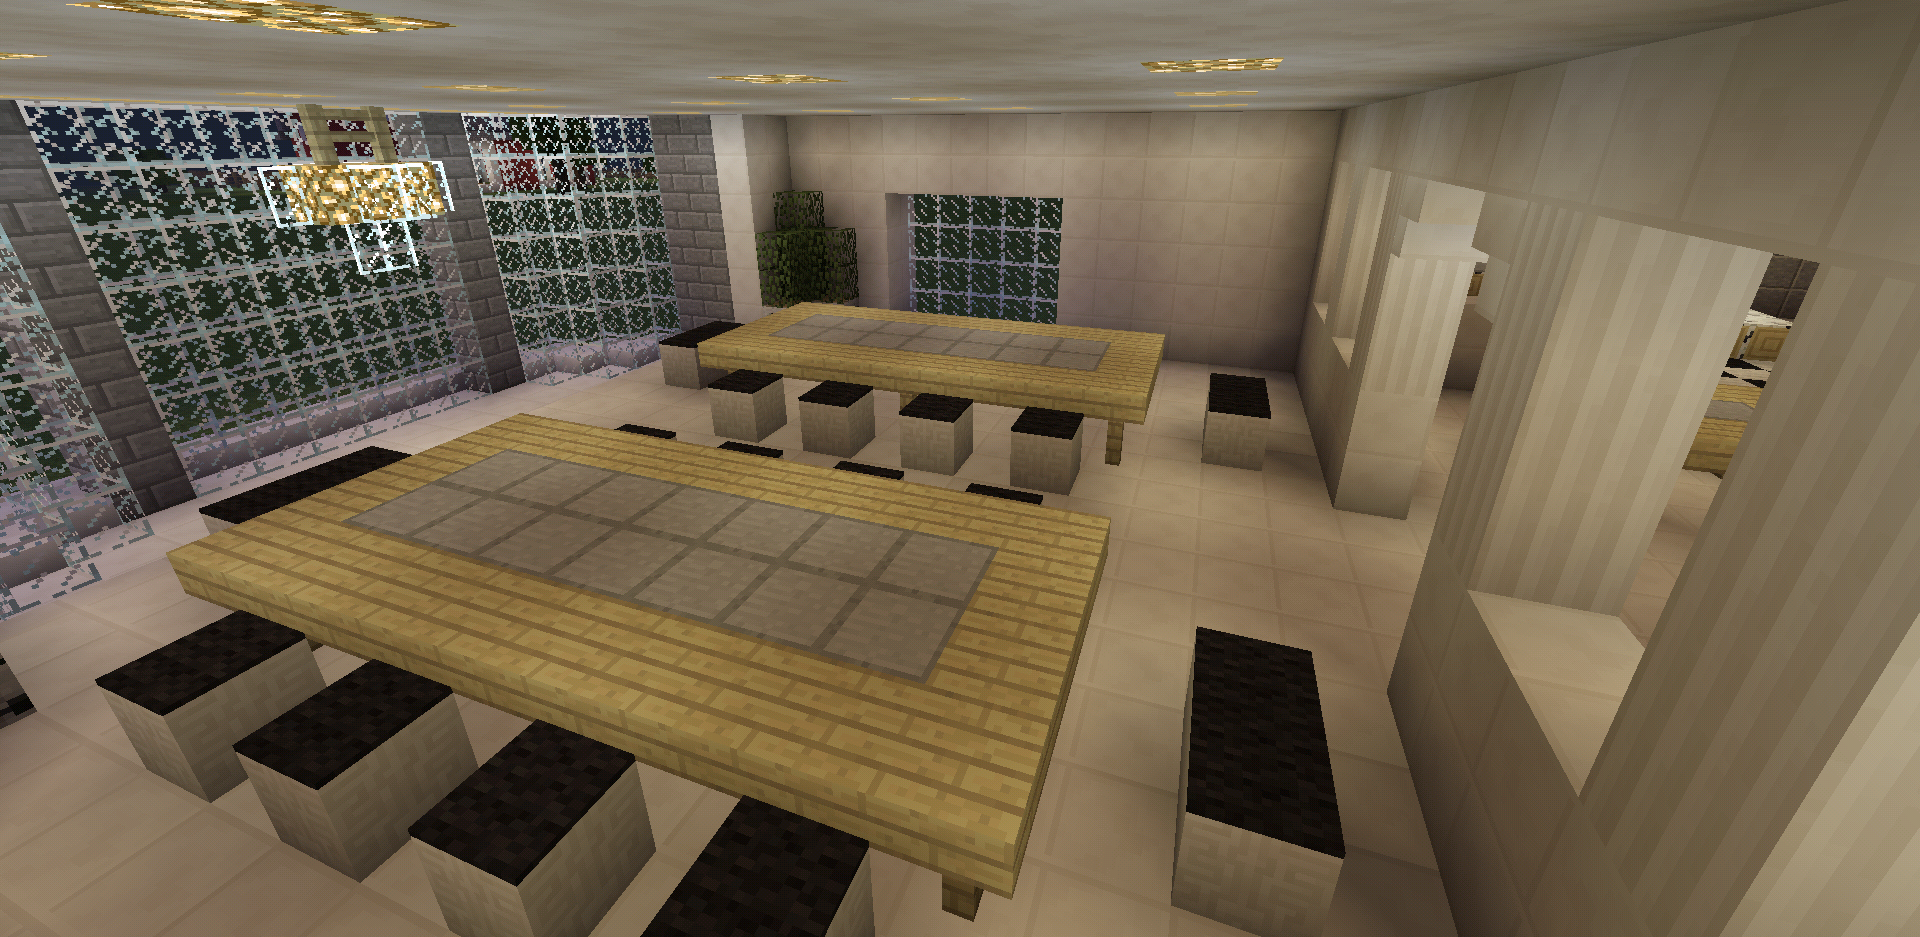 Dining Room In Minecraft - Home Design Ideas